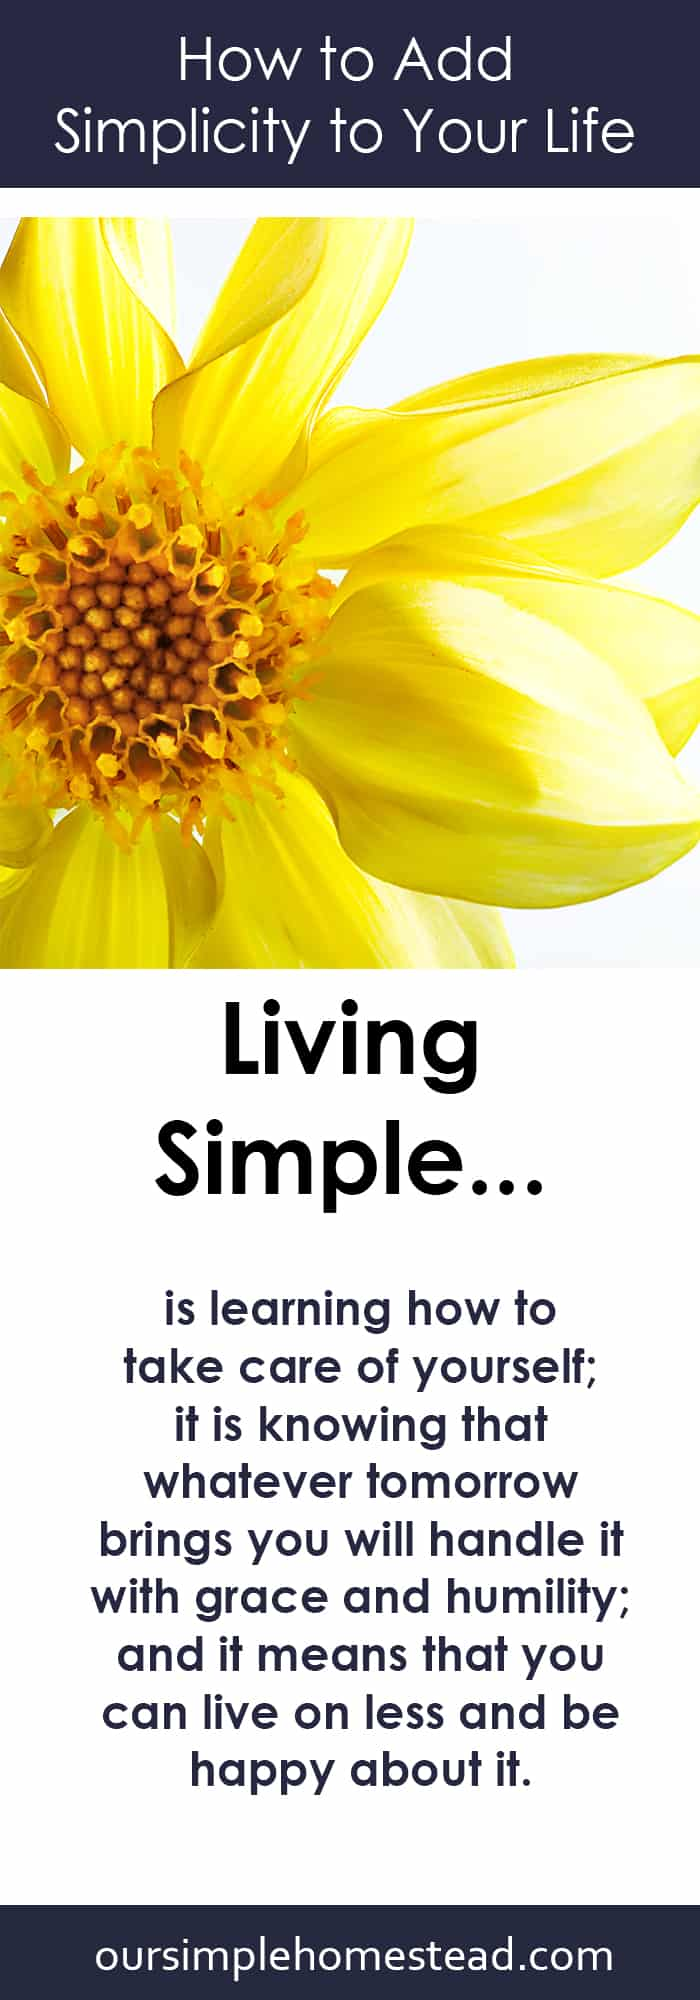 How to Add Simplicity to Your Life